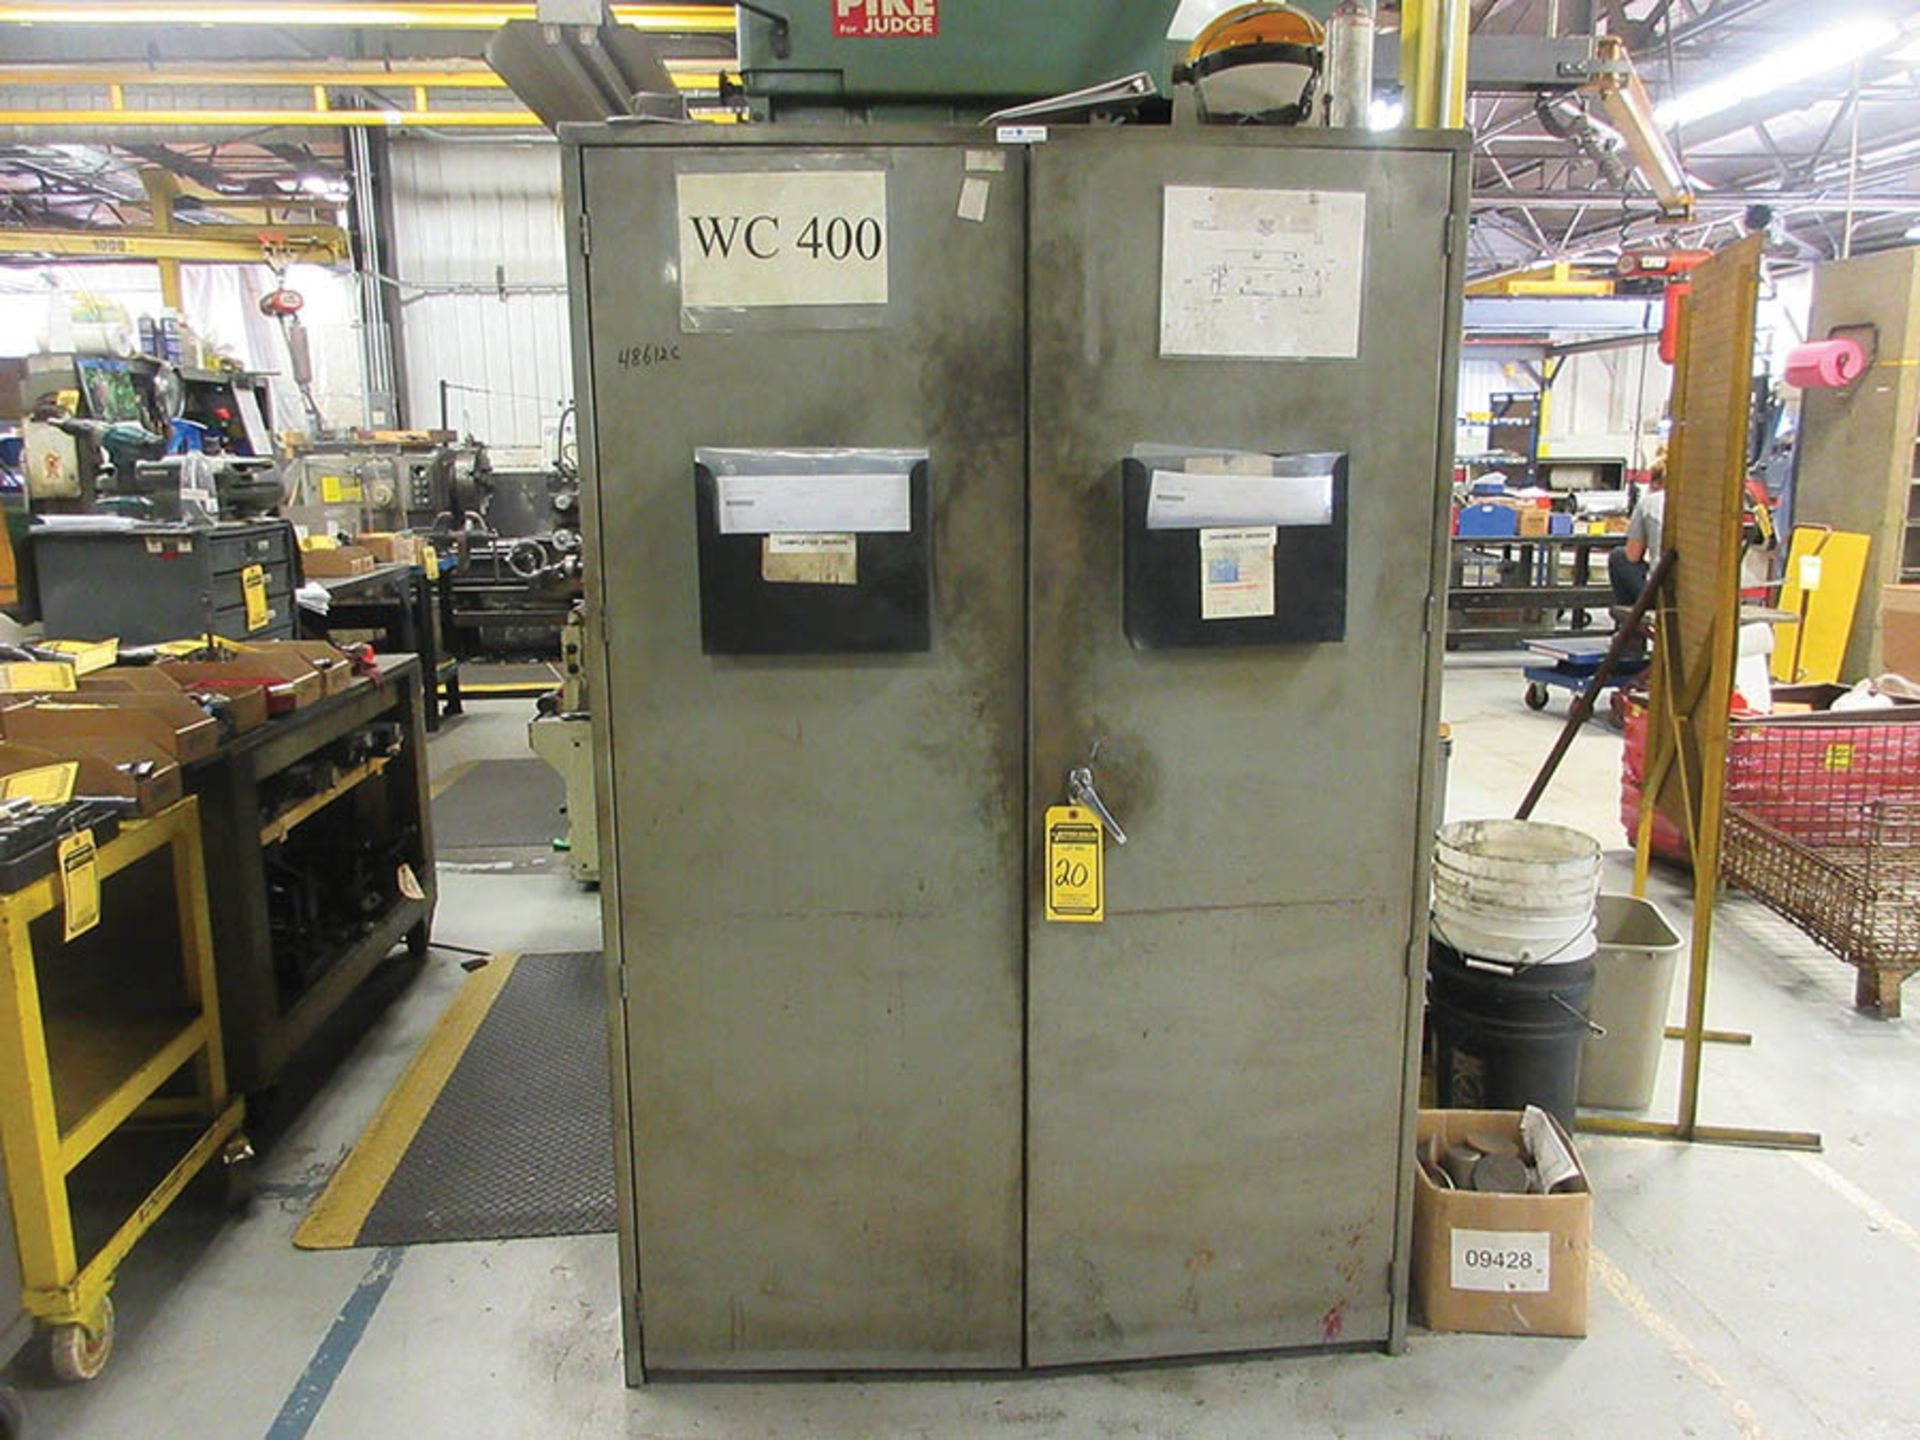 Lot 20 - GRIZZLY EQUIP. 2-DOOR CABINET W/ ALLEN DRILL TOOLING: REAMERS, DRILL BITS & MORE